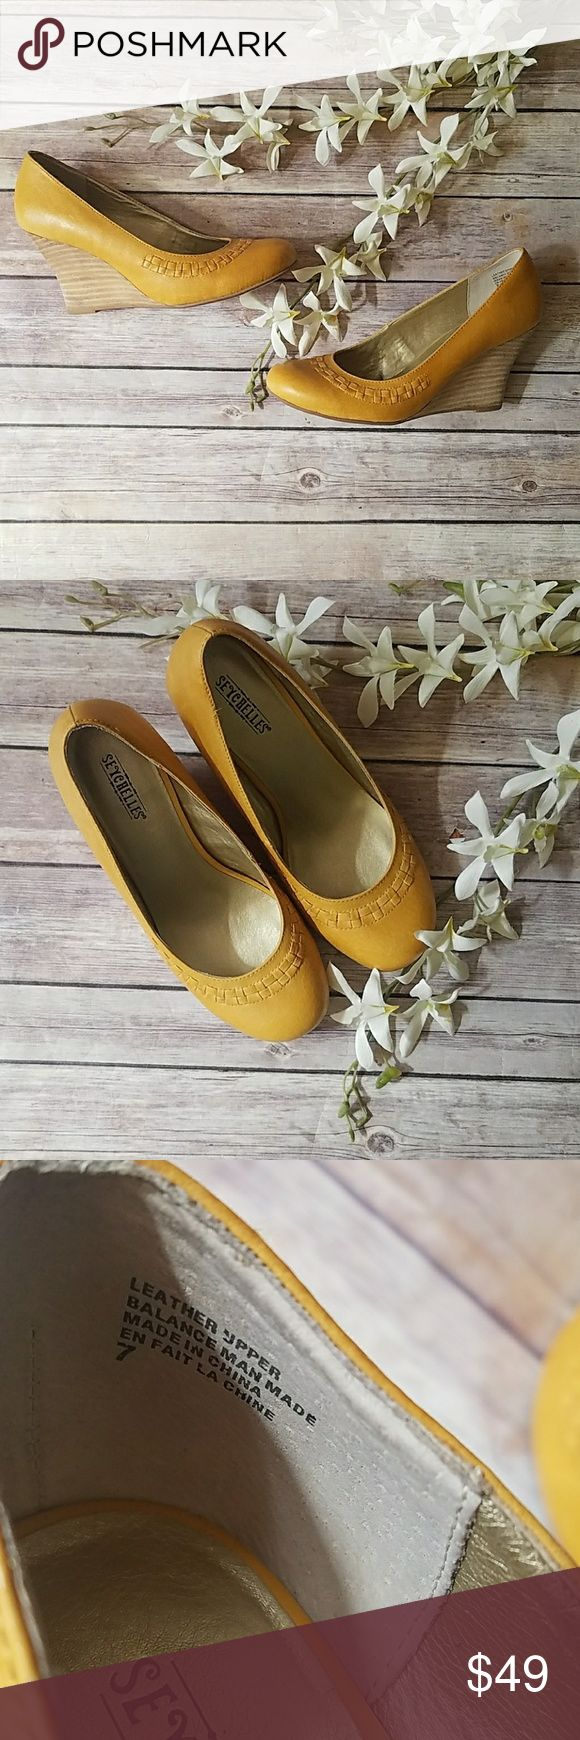 "Mustard Yellow Wedge Heels Seychelles SZ 7 Beautiful mustard yellow wedge heels by Seychelles. Leather upper. Features interlaced leather along front of shoe. Wedge heel measures 3"" high. Seychelles Shoes Wedges"